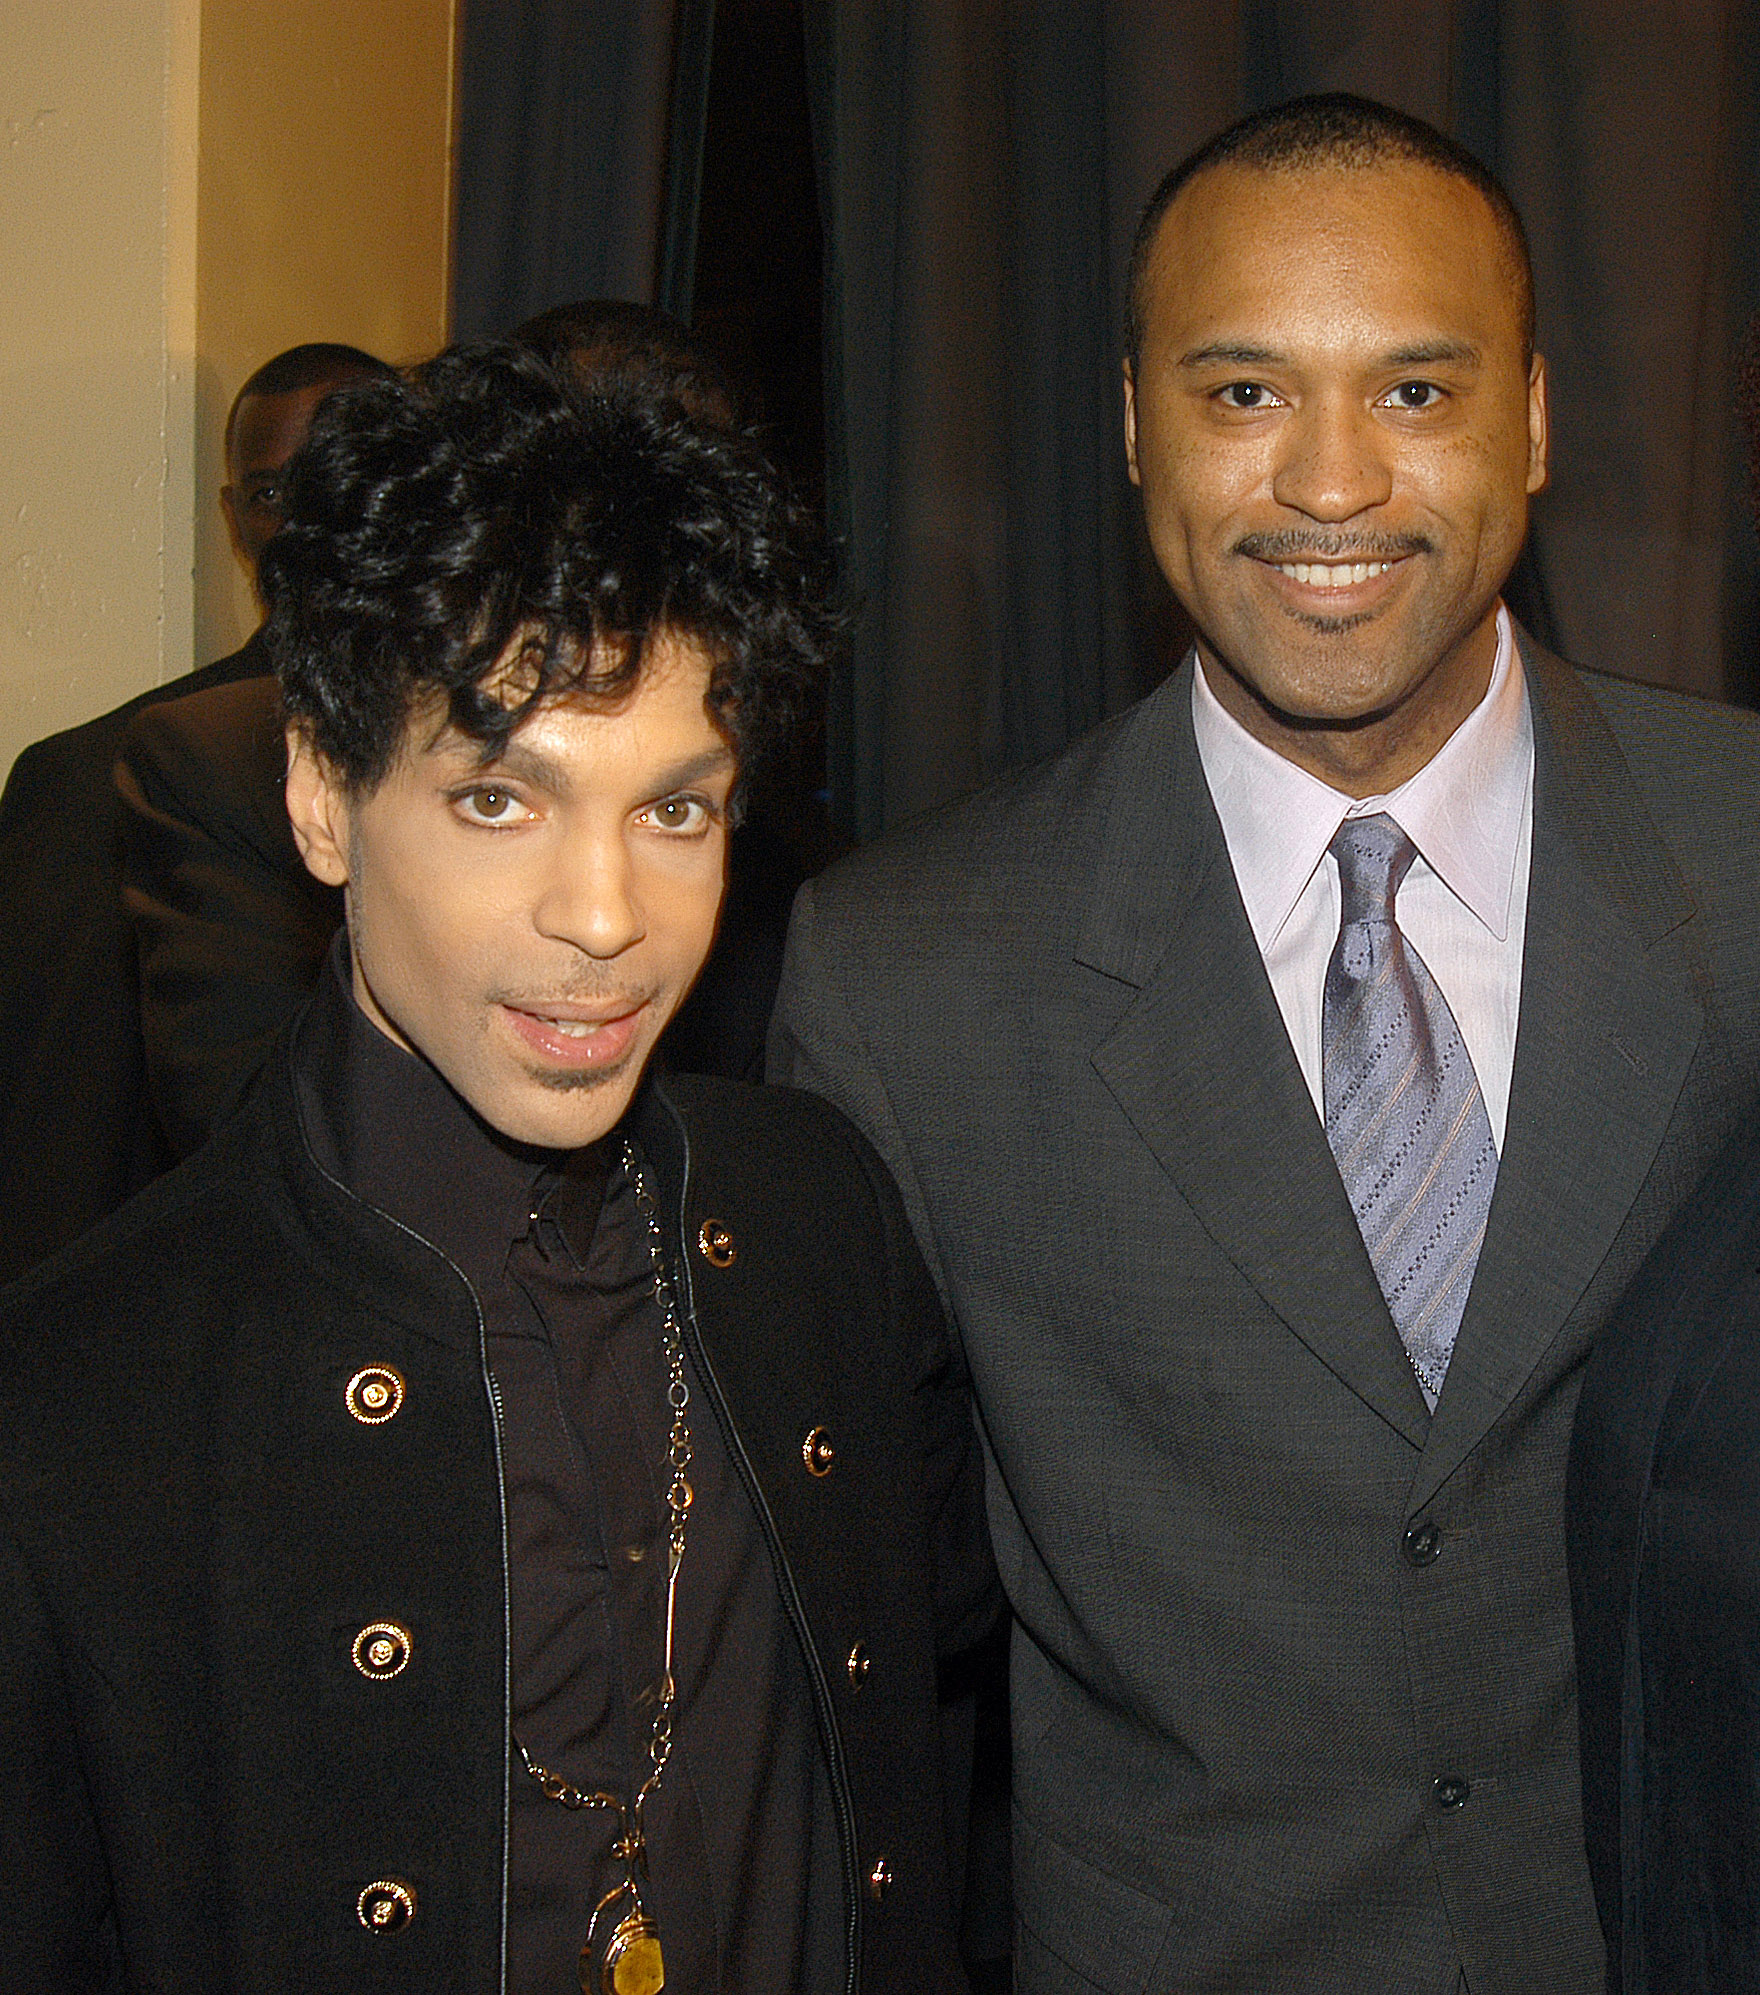 Prince and LLM